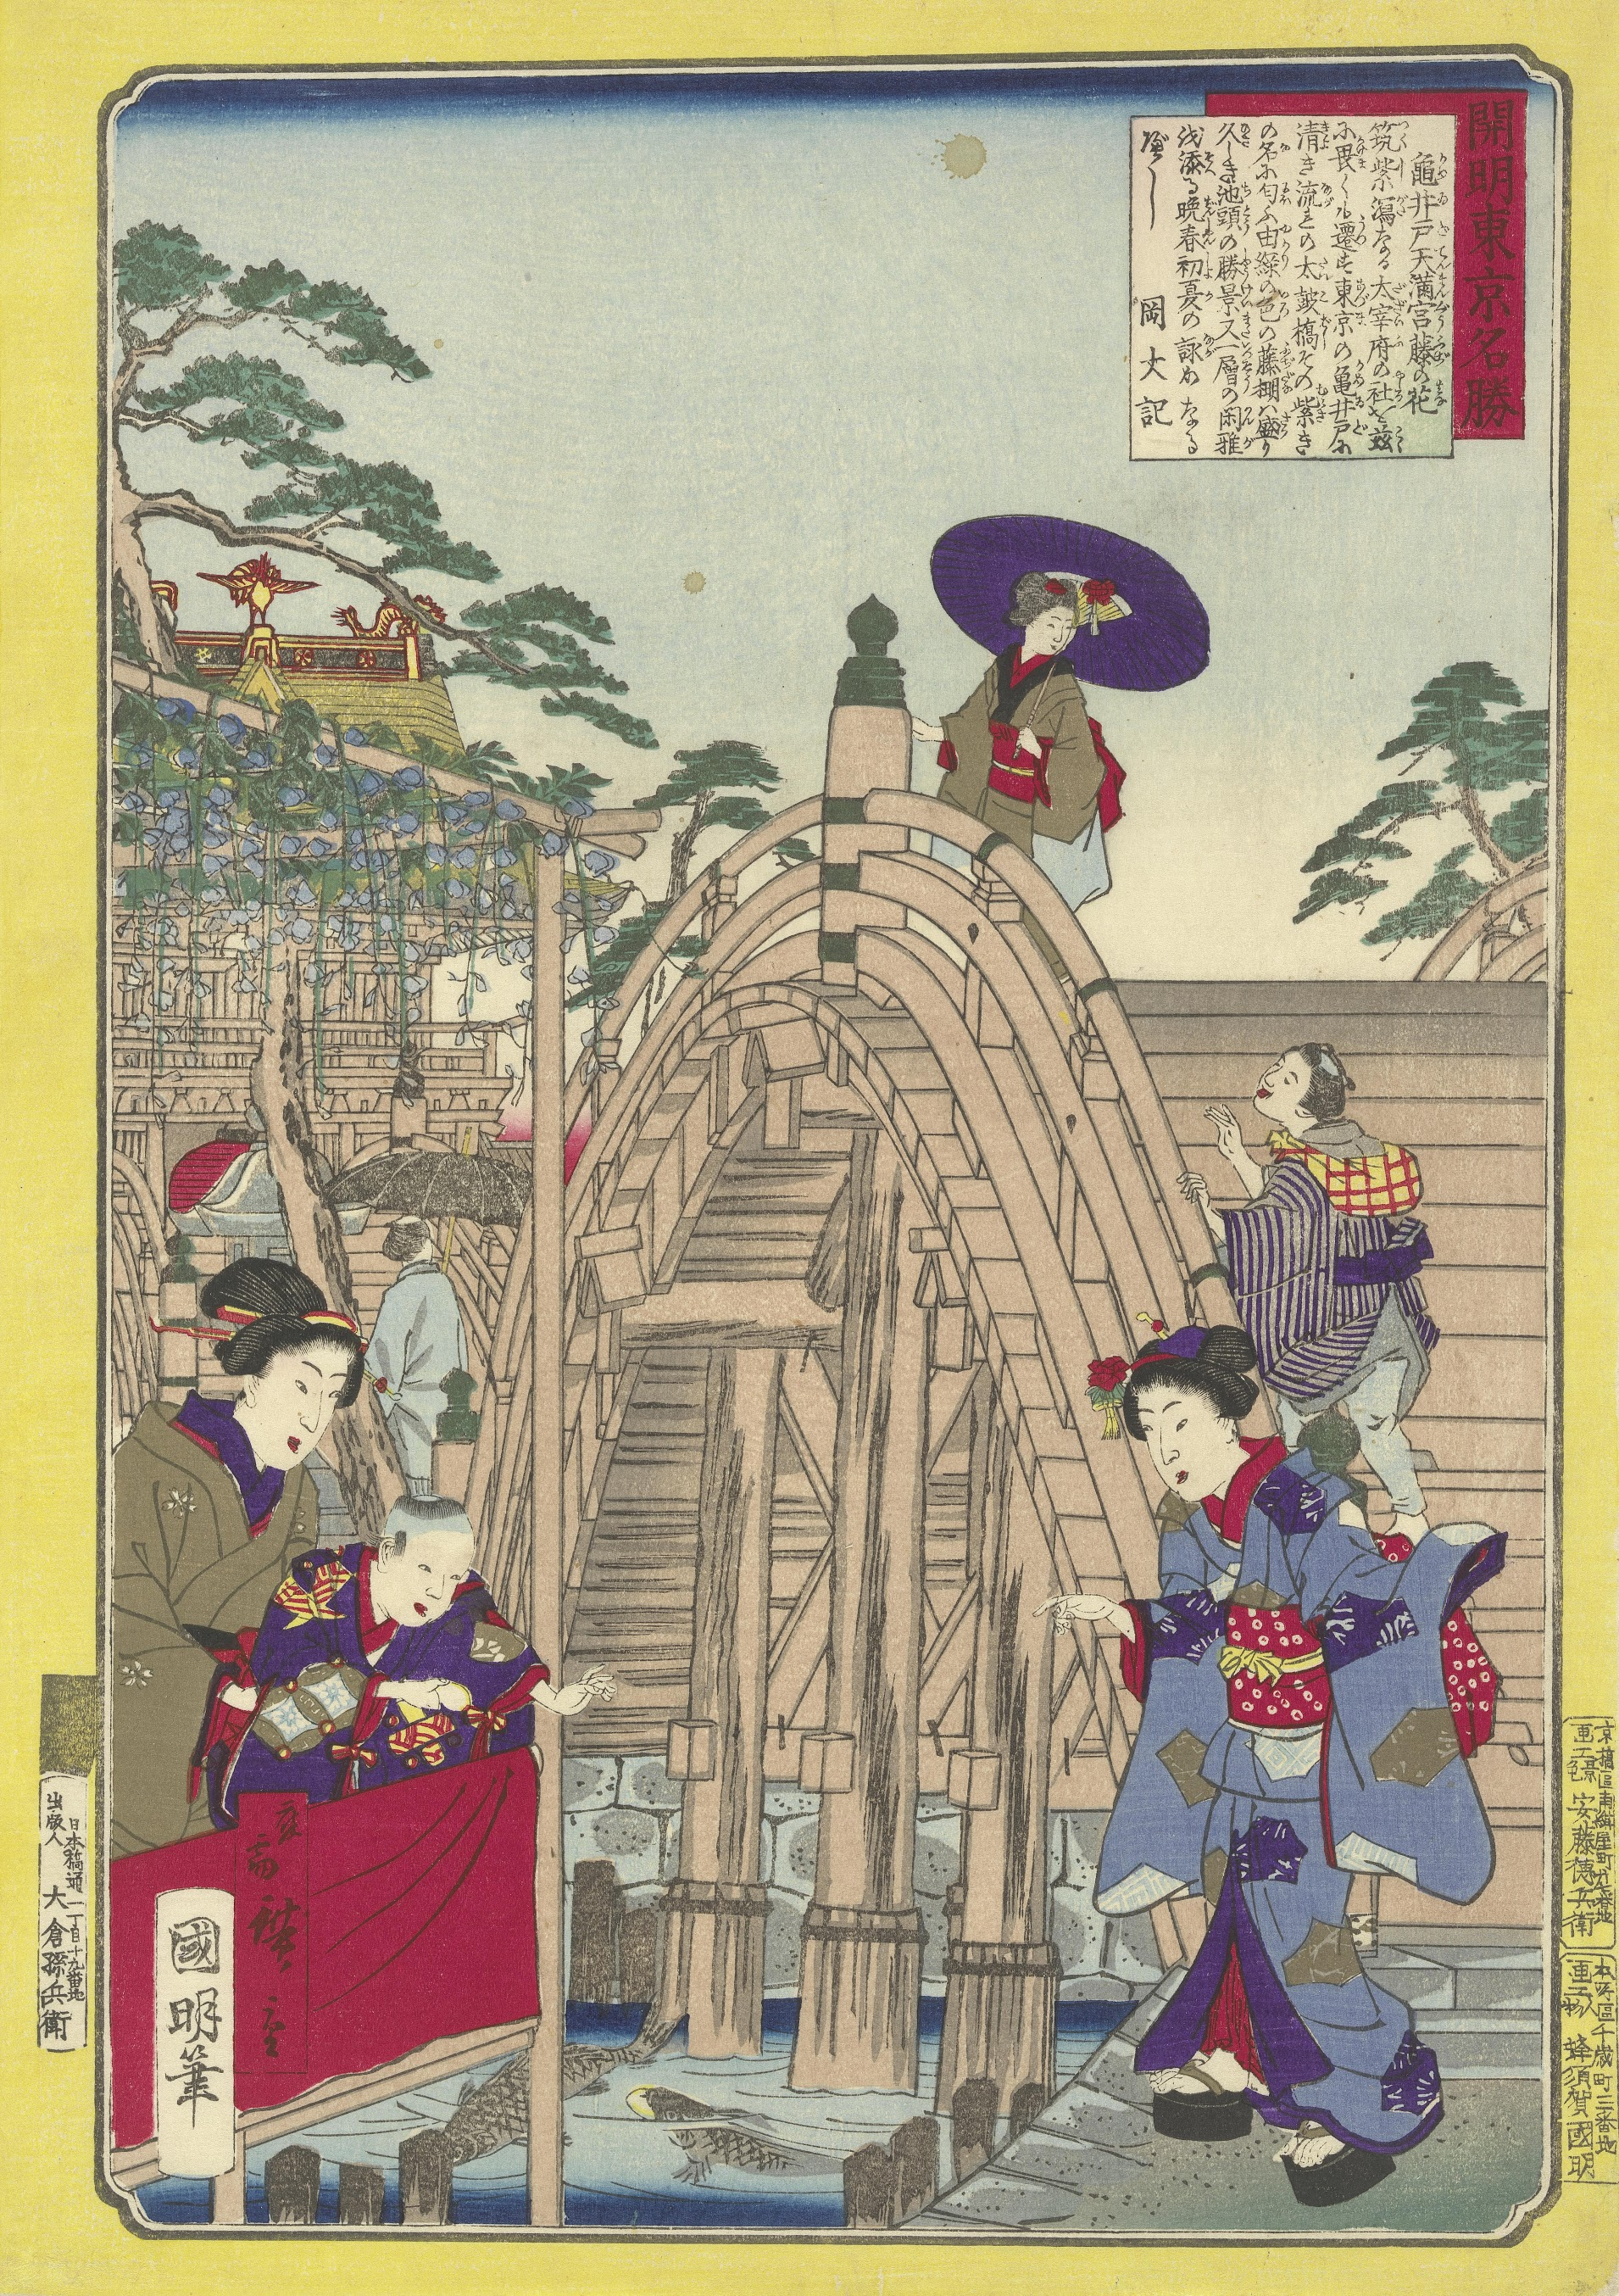 The Wisteria Flowers at the Tenmangū Shrine in Kameido, from the series Beautiful Views on Enlightened Tokyo Tokyo, c. 1881 Utagawa Hiroshige III (1842 - 1894)